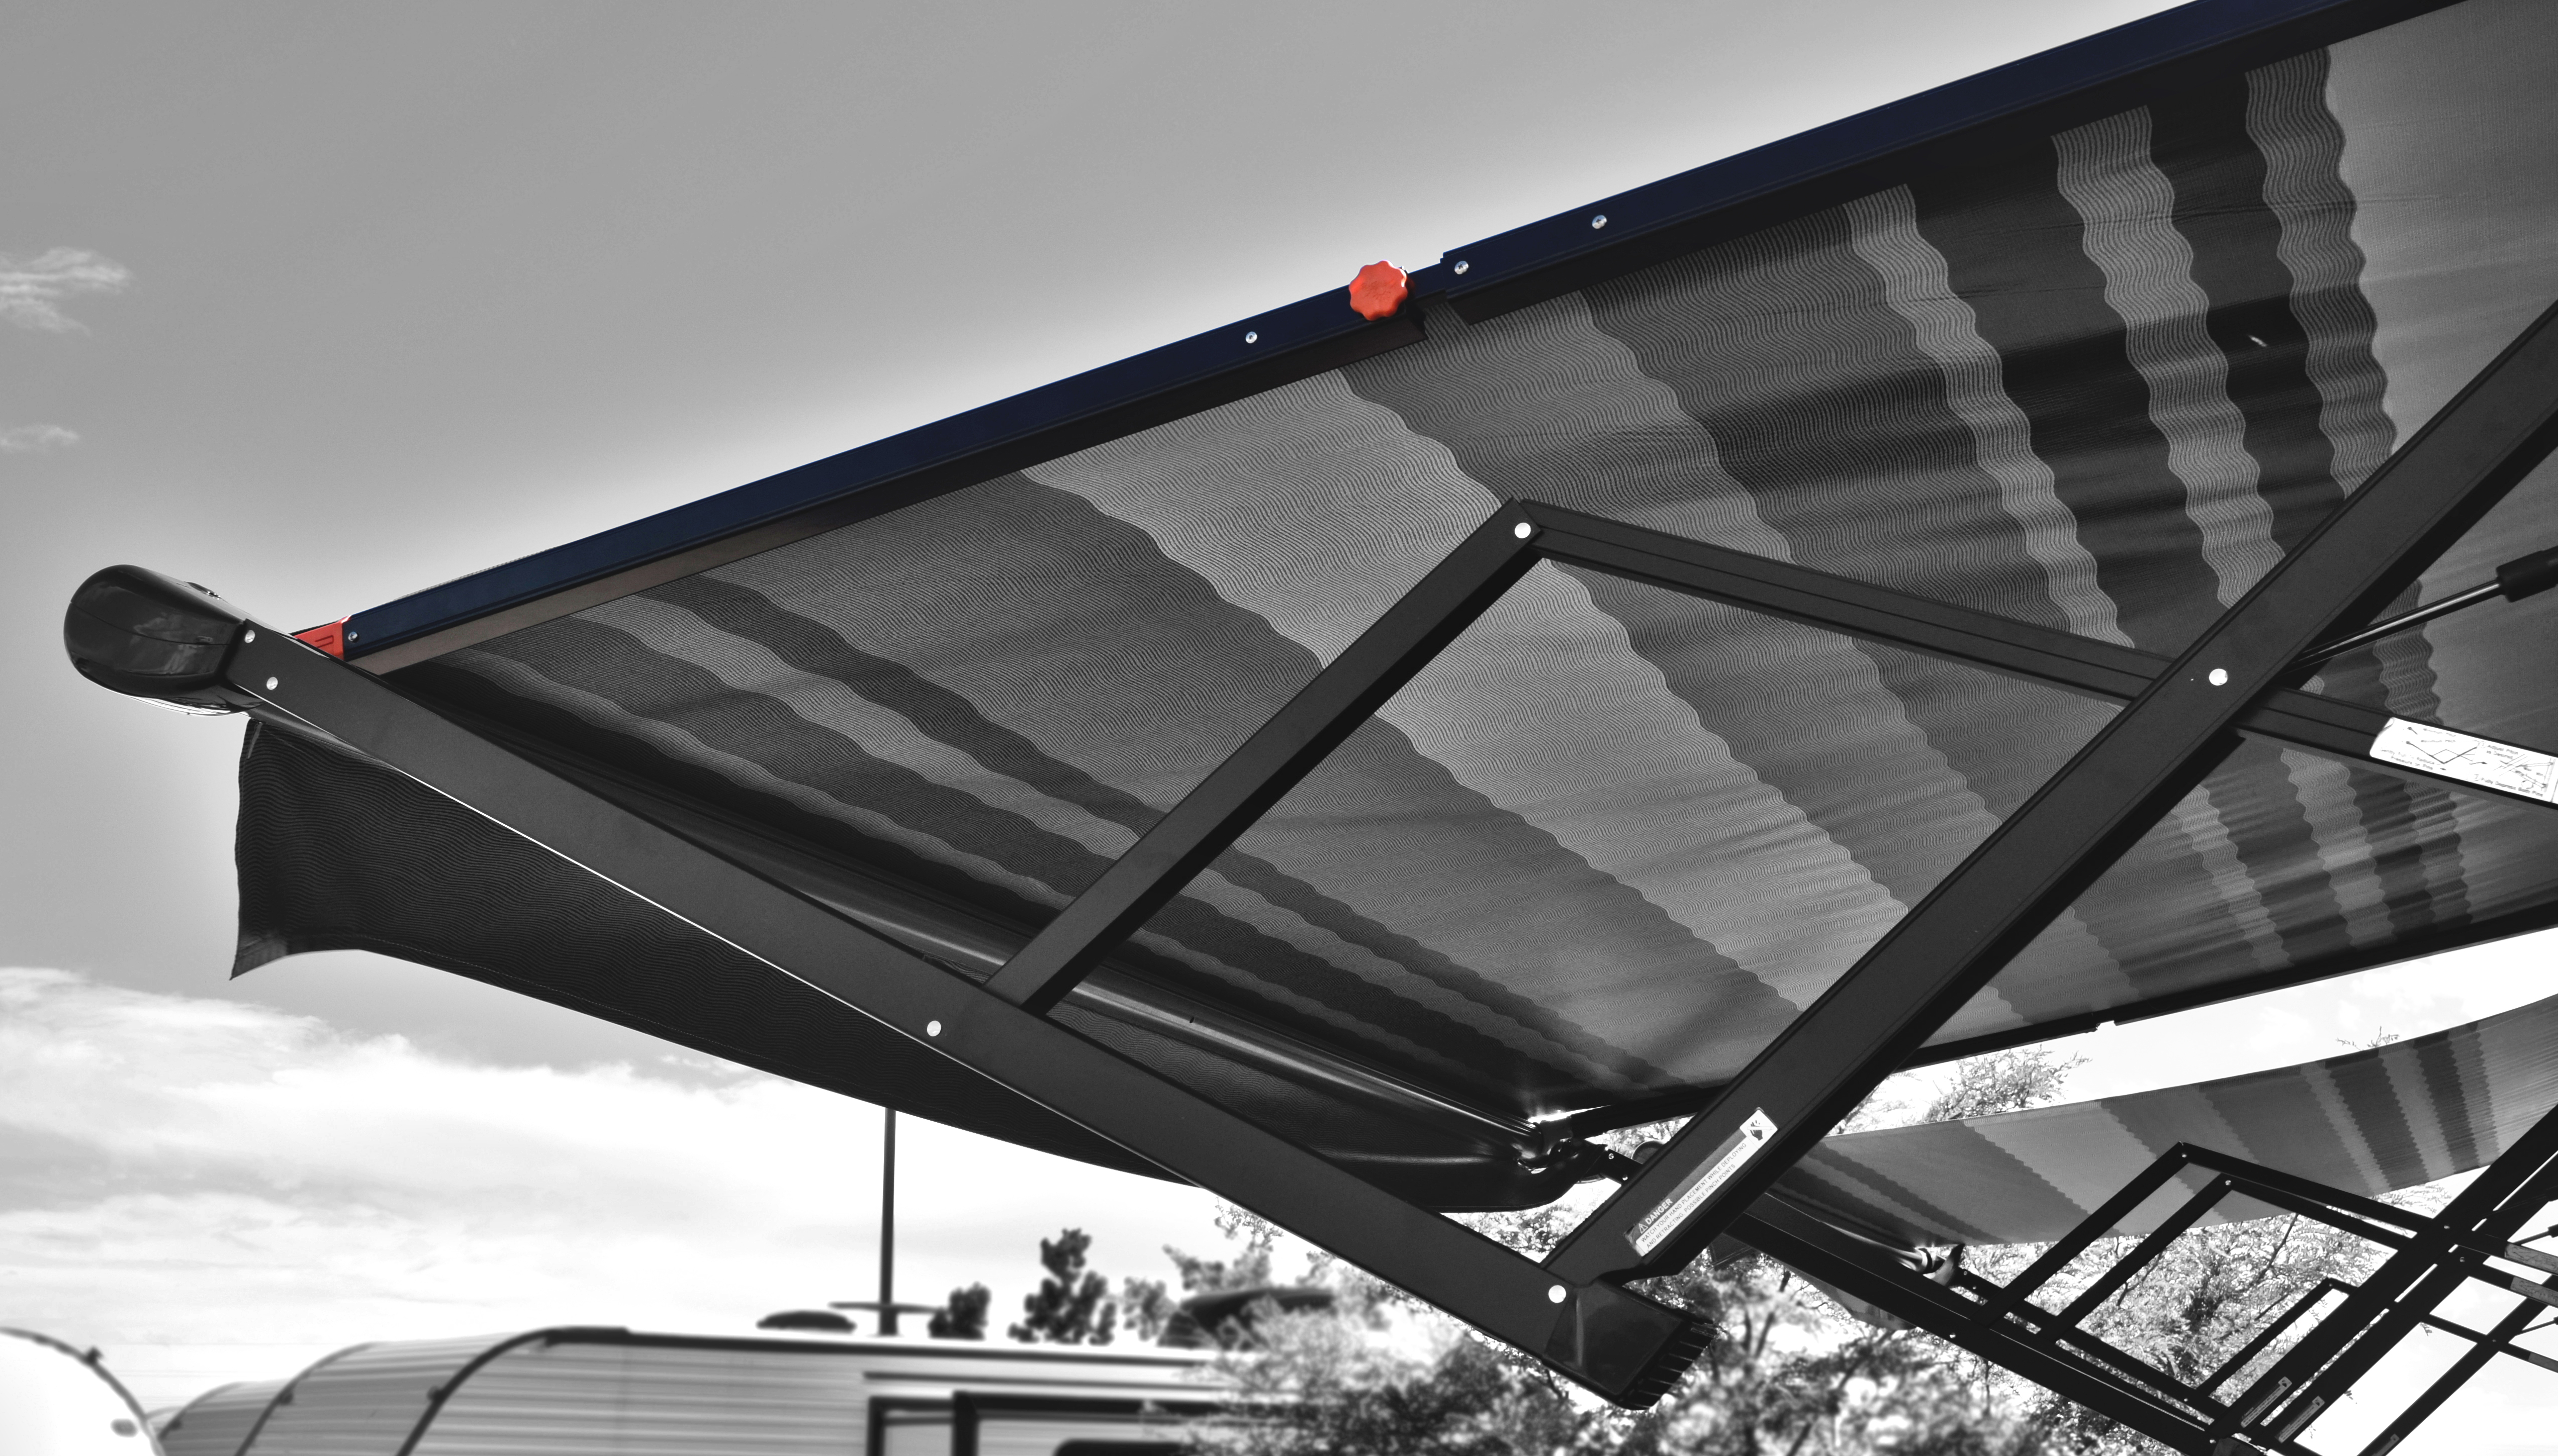 Anti-Flap Kit in black and white on a RV awning